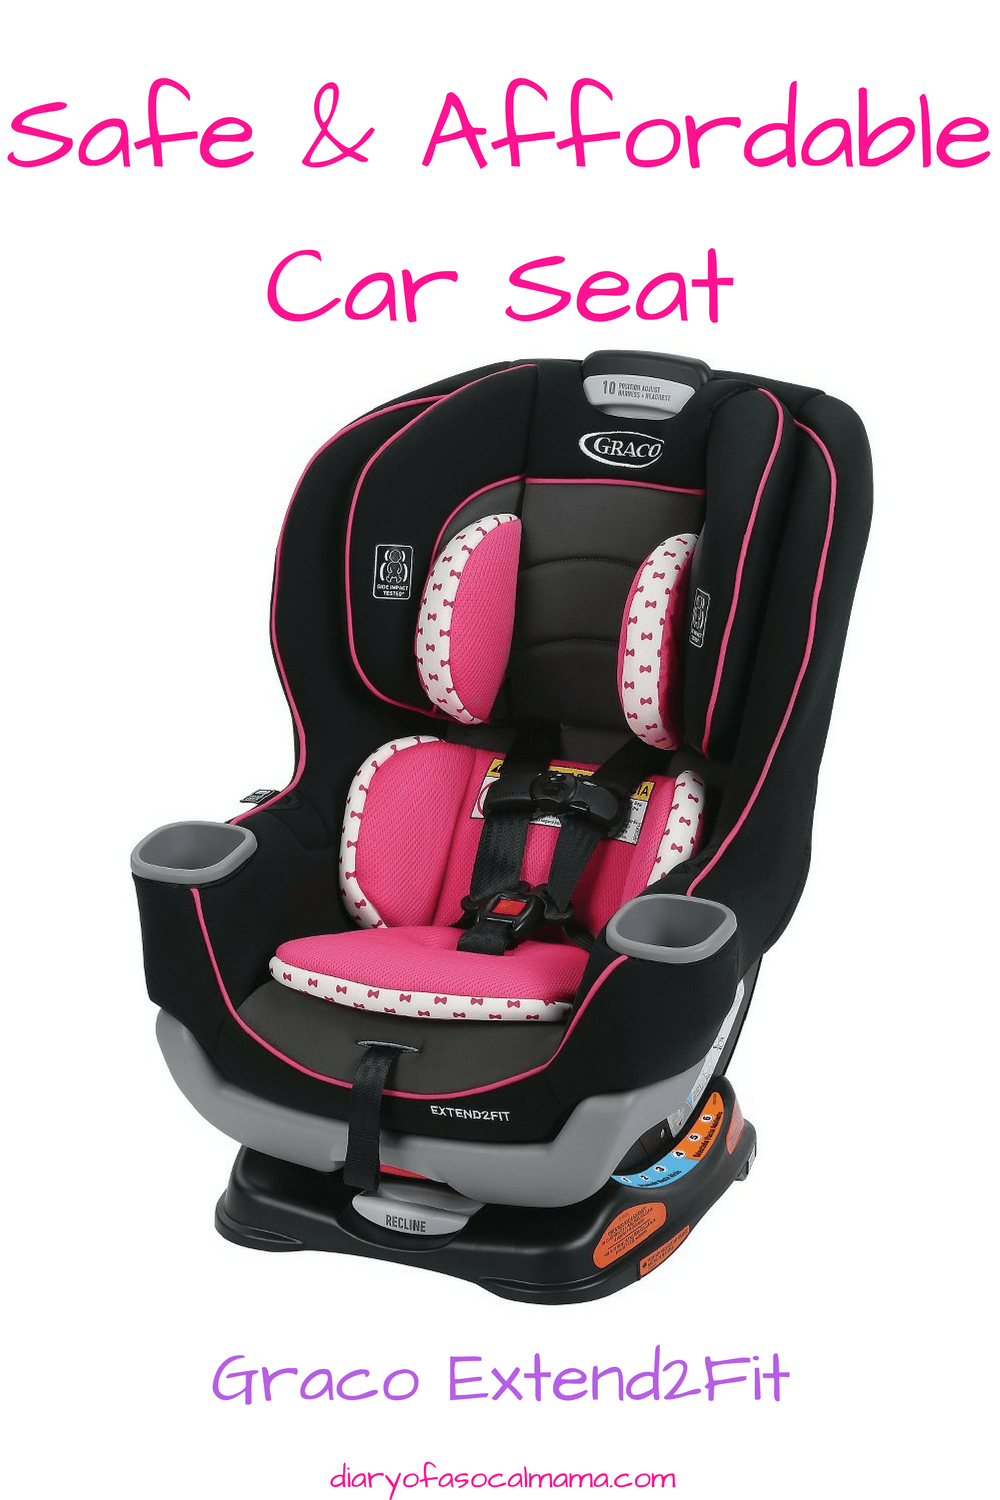 Graco Extend@Fit car seat